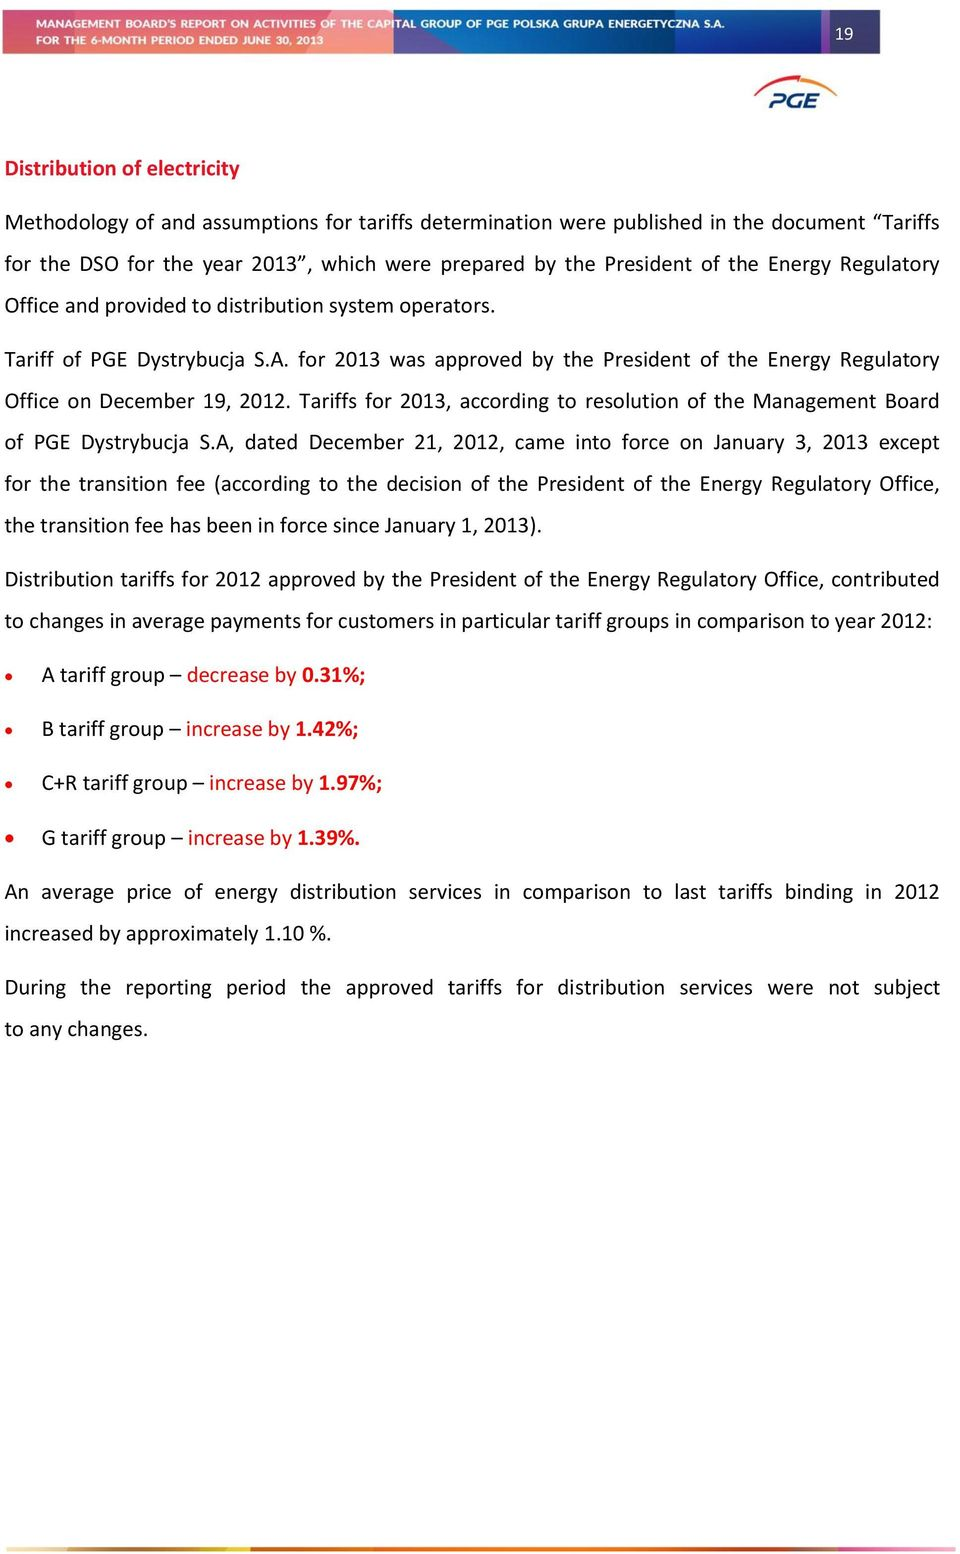 Tariffs for 2013, according to resolution of the Management Board of PGE Dystrybucja S.